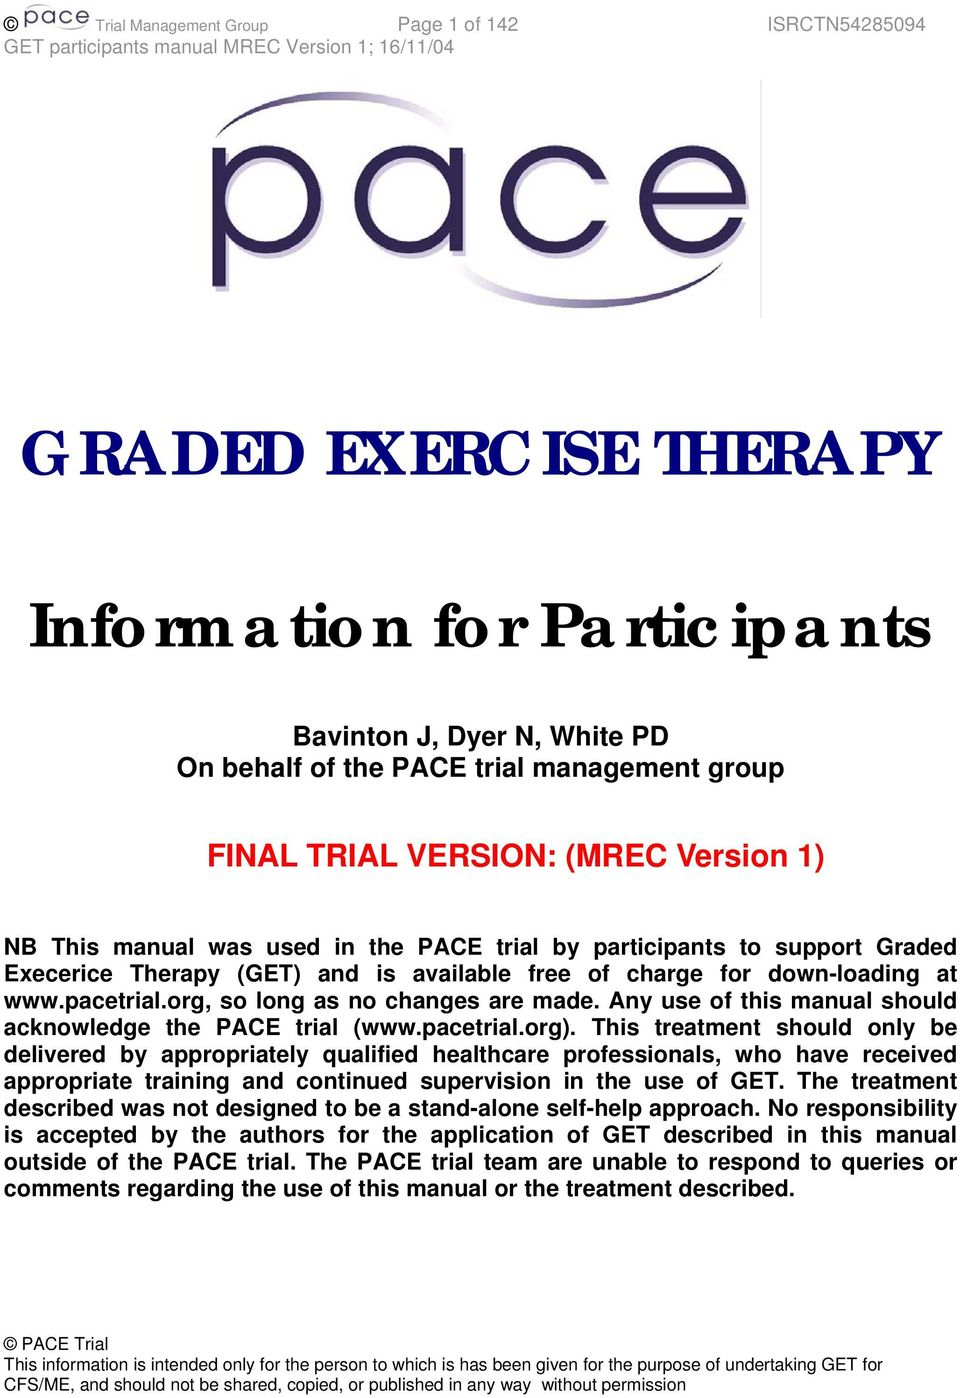 org, so long as no changes are made. Any use of this manual should acknowledge the PACE trial (www.pacetrial.org).